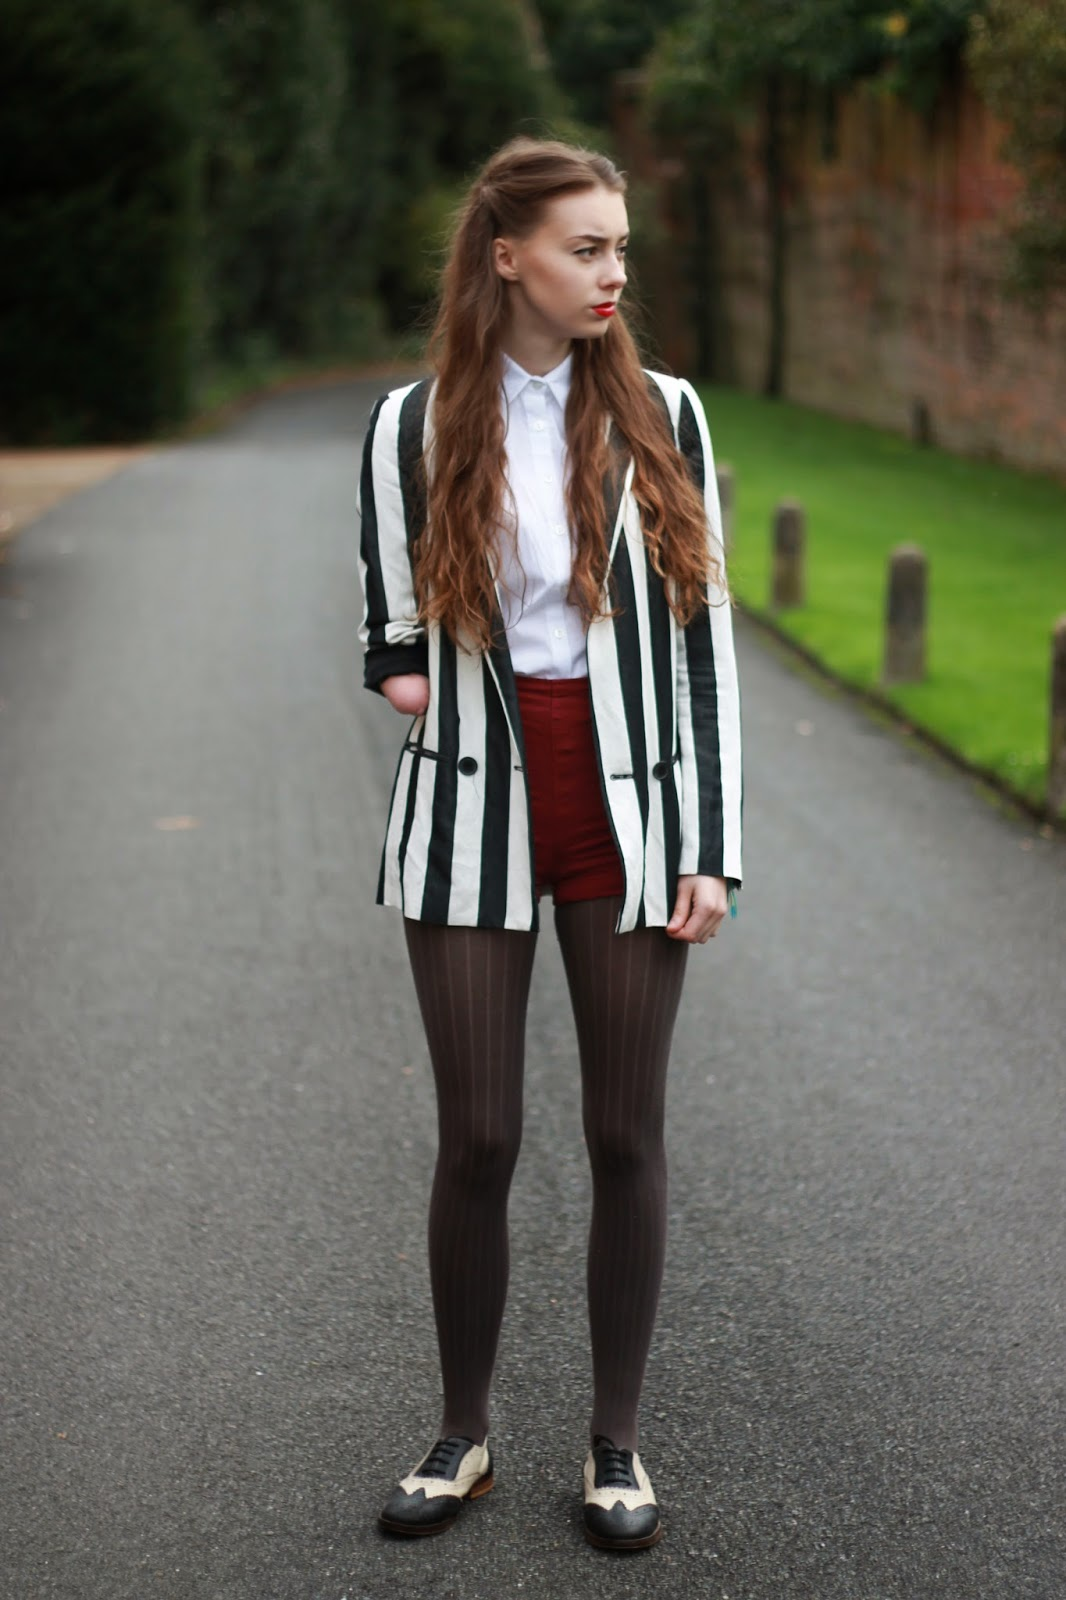 Mandeville Sisters: Outfit Of The Day 20th October